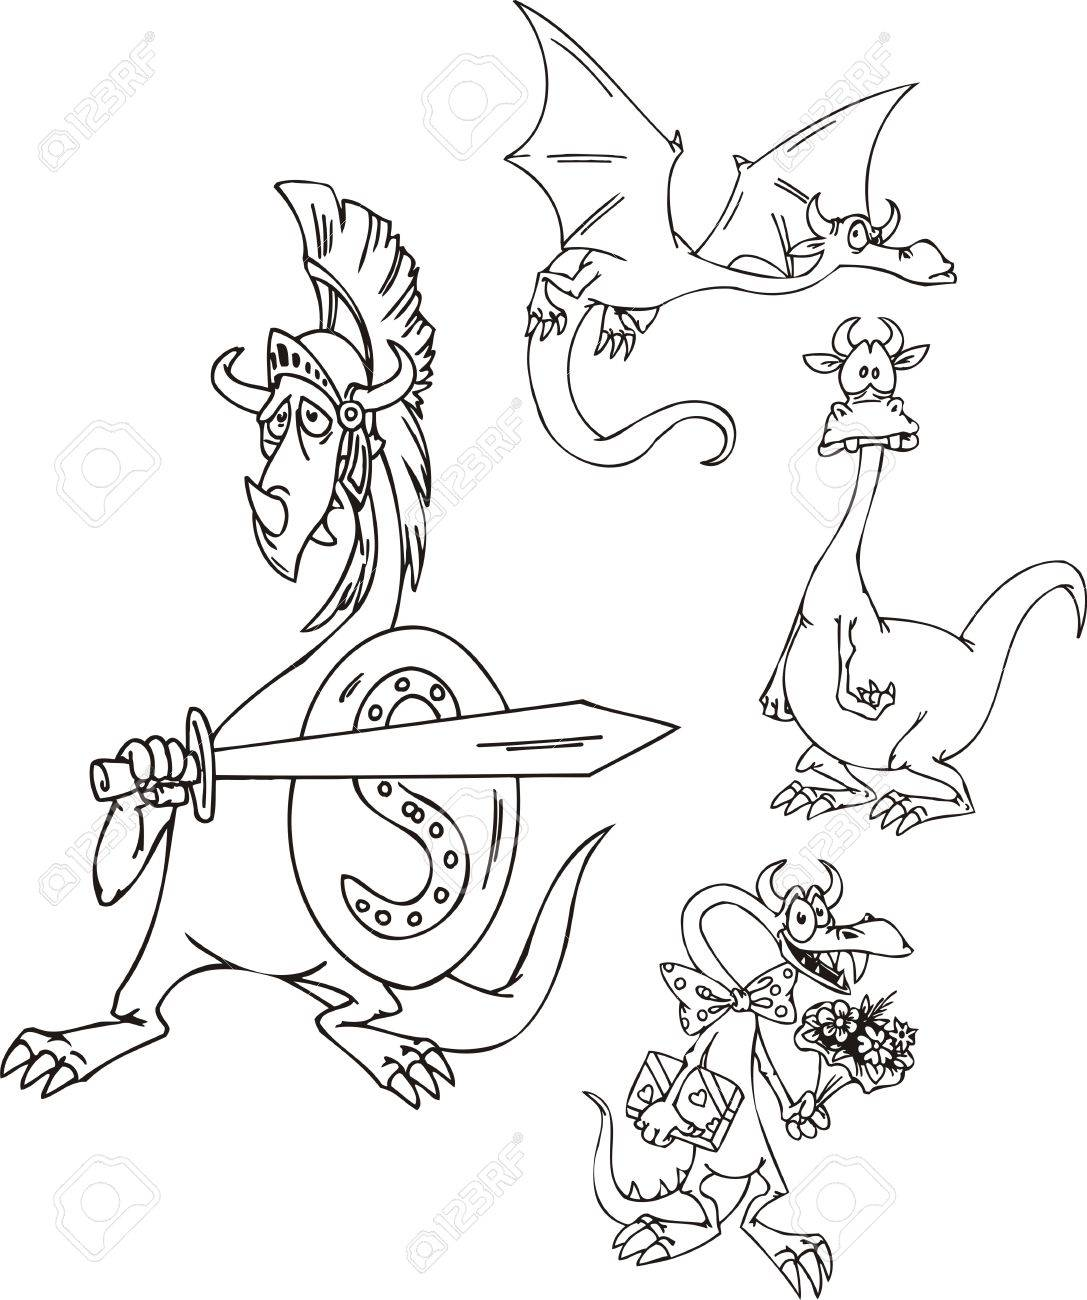 Dragon with a sword, a dragon with flowers, a volant dragon. Funny dragons.   illustration ready for vinyl cutting. Stock Vector - 8570797